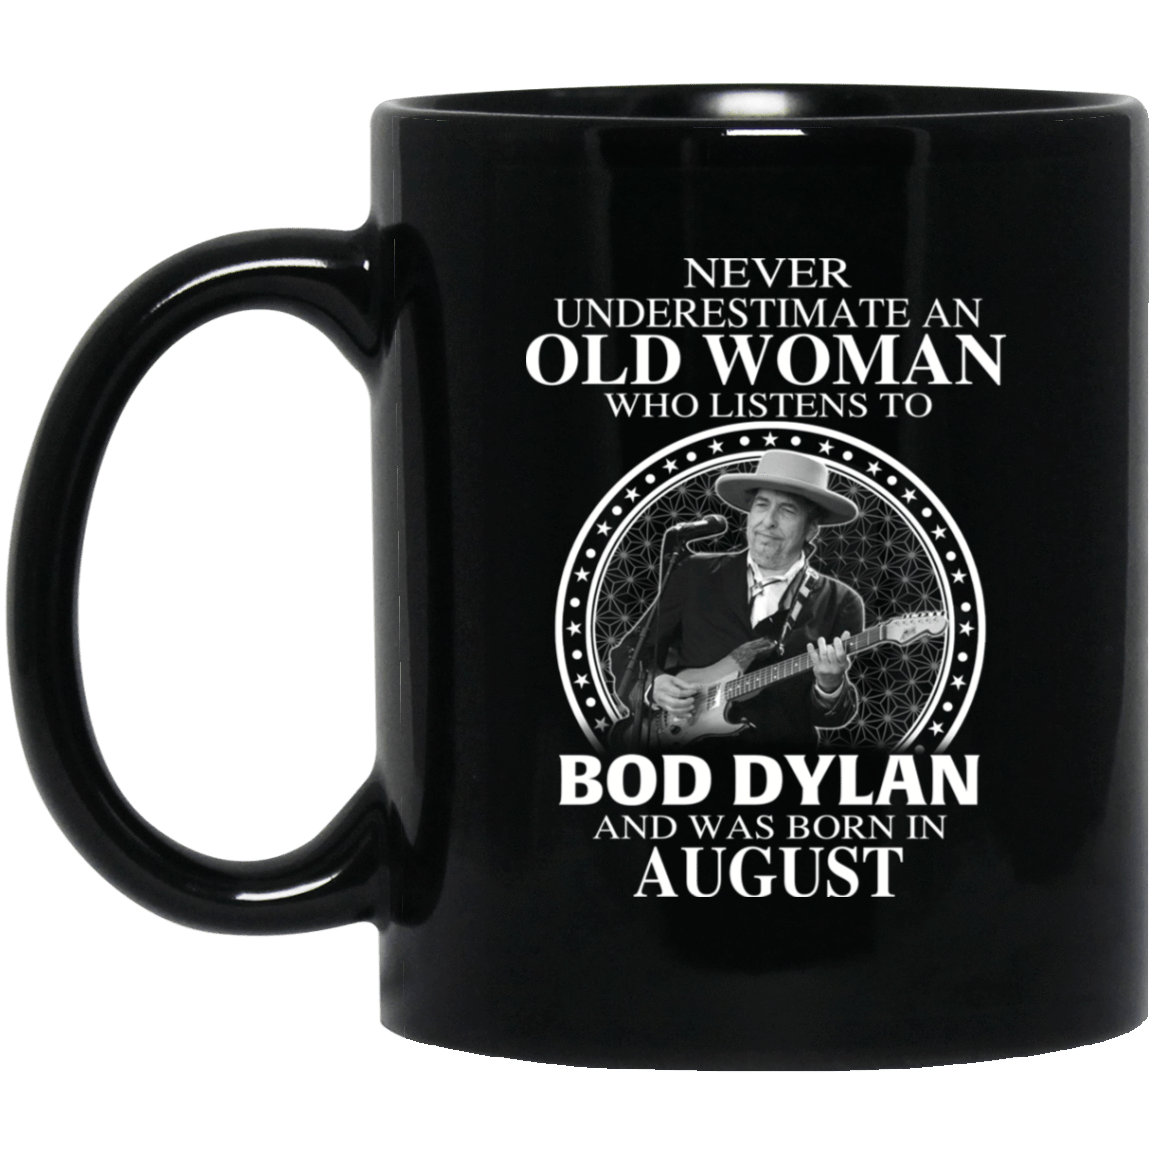 An Old Woman Who Listens To Bob Dylan And Was Born In August Mug 1065-10181-76154148-49307 - Tee Ript